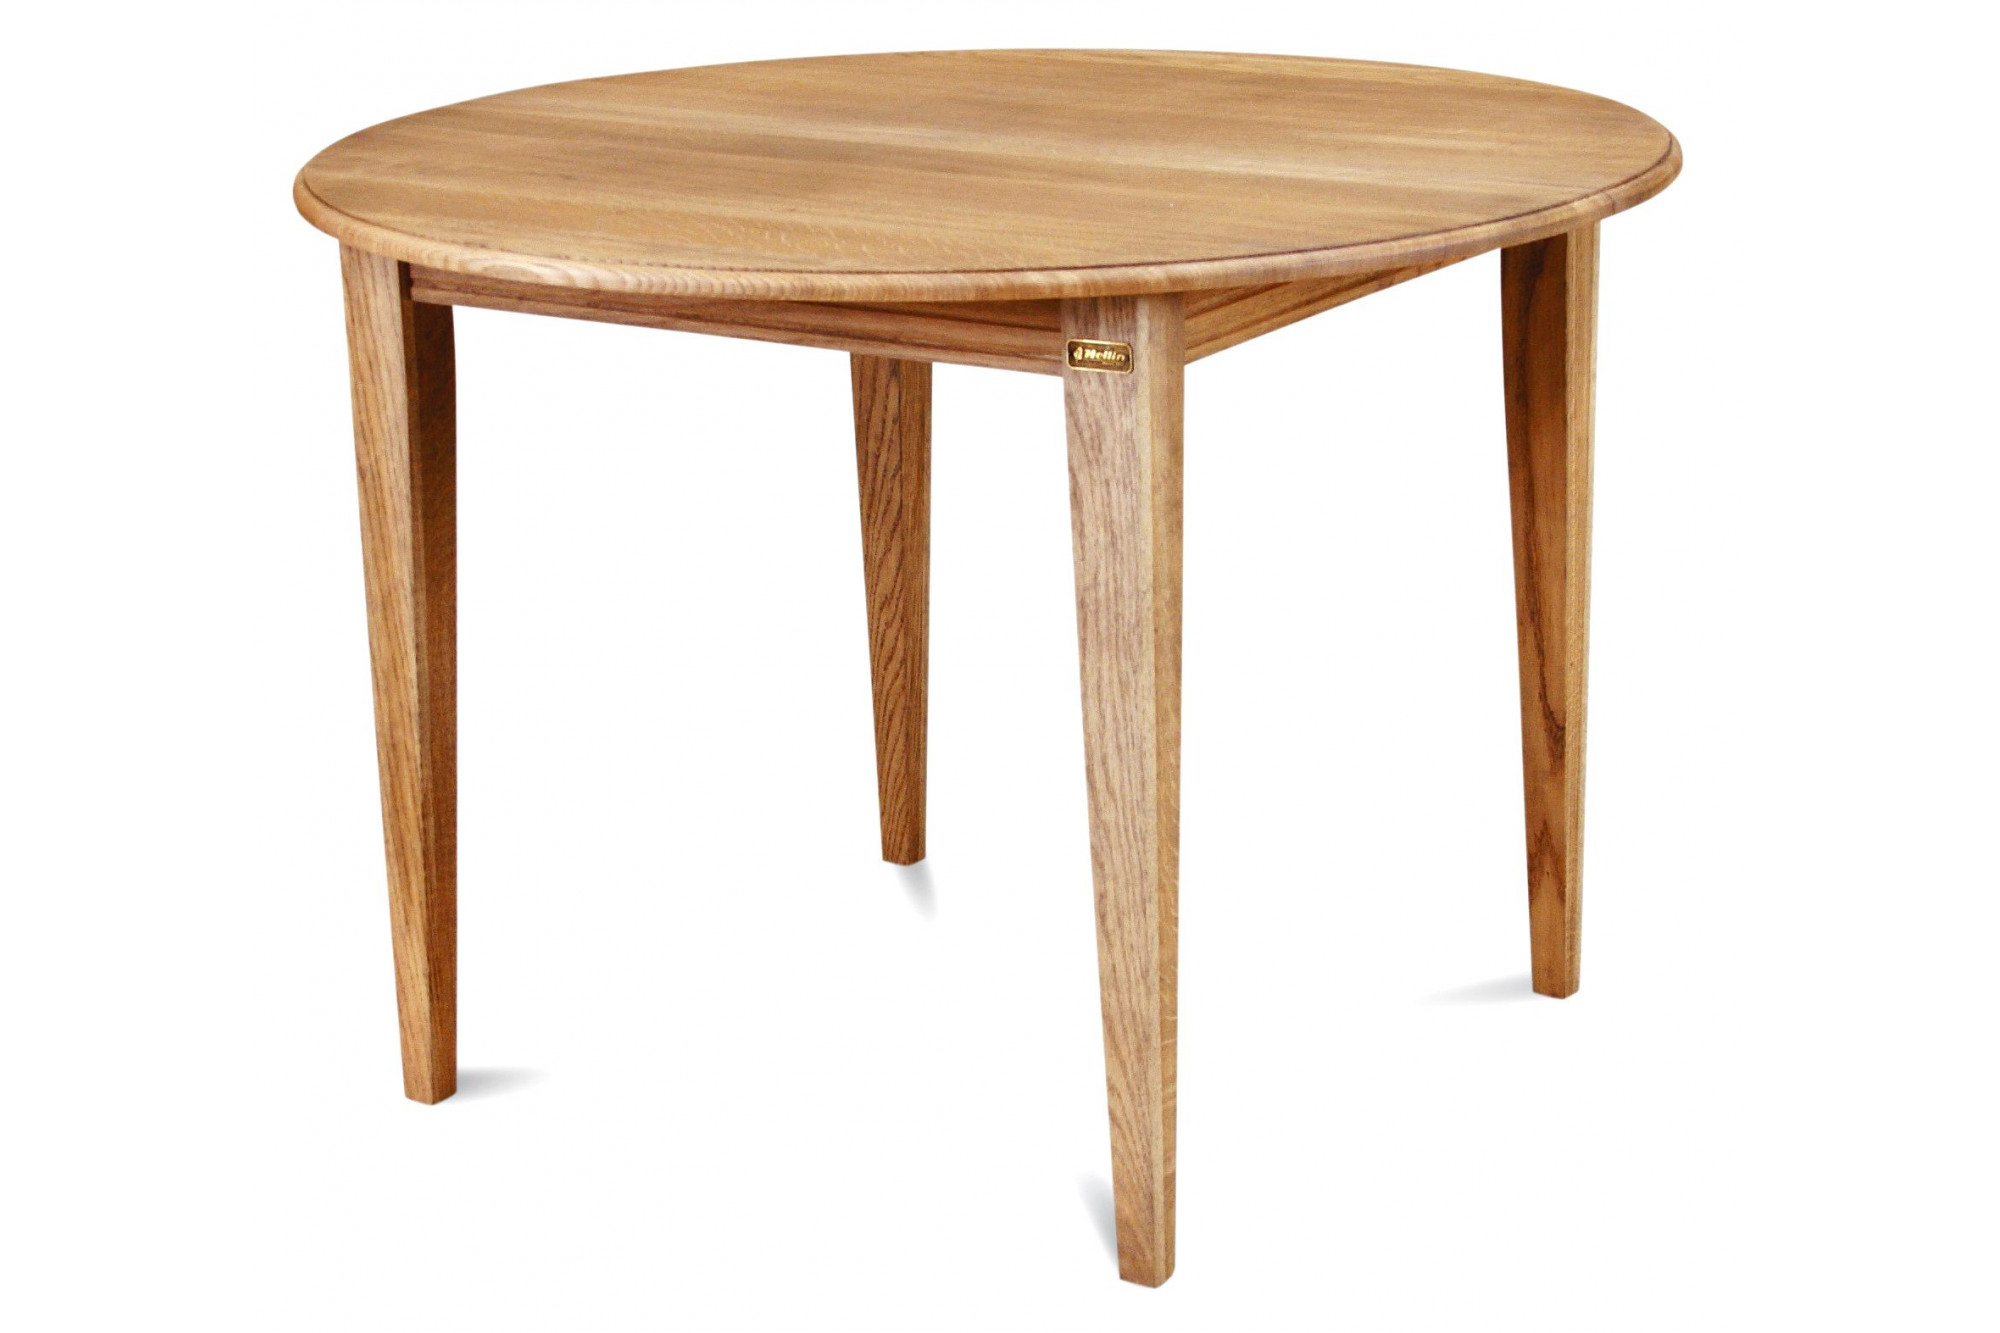 Table ronde extensible en ch ne massif une allonge hellin - Table en bois ronde ...